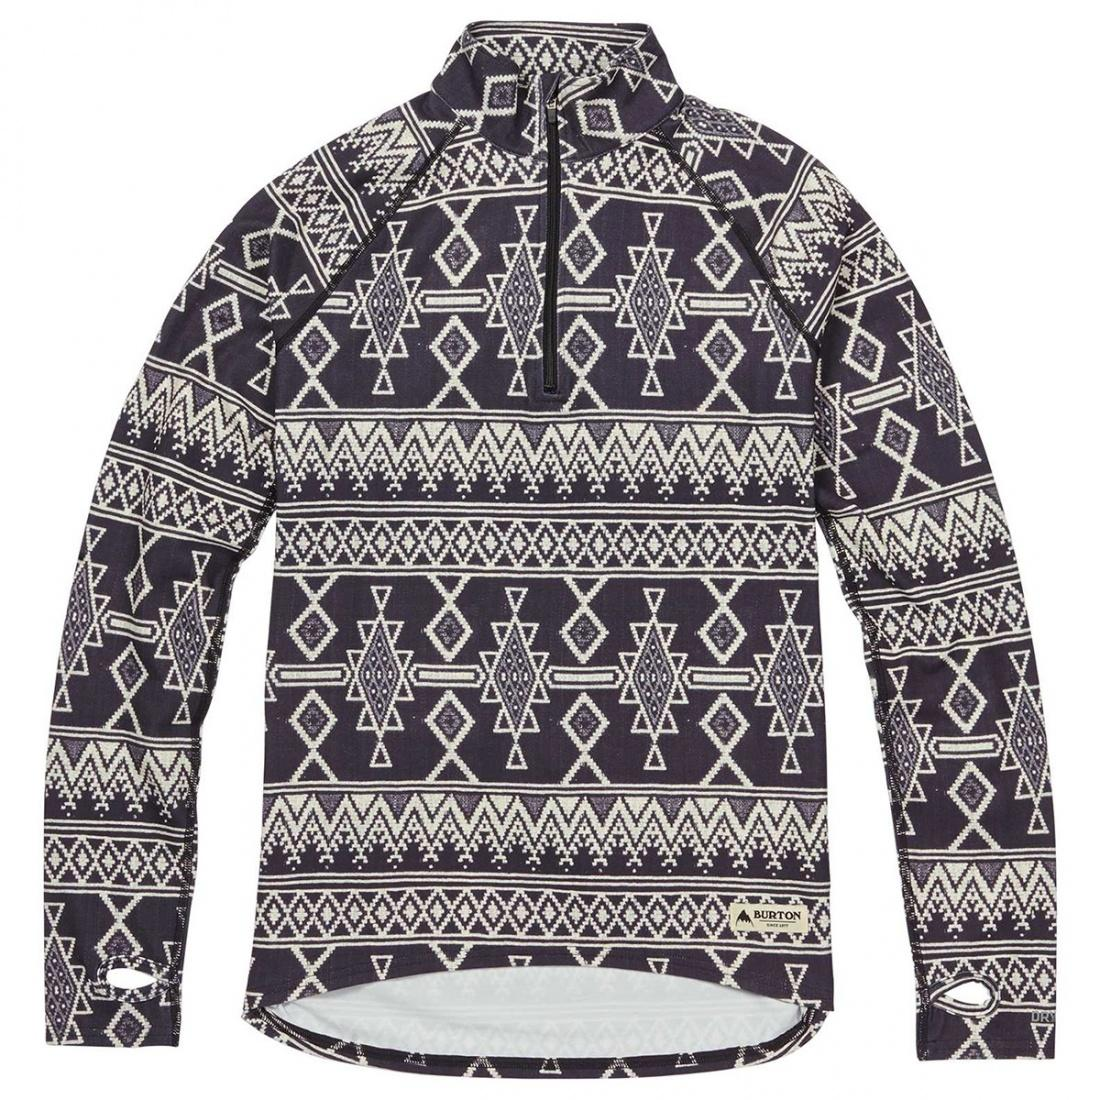 Термобелье Burton Expedition 1/4 Zip Base Layer